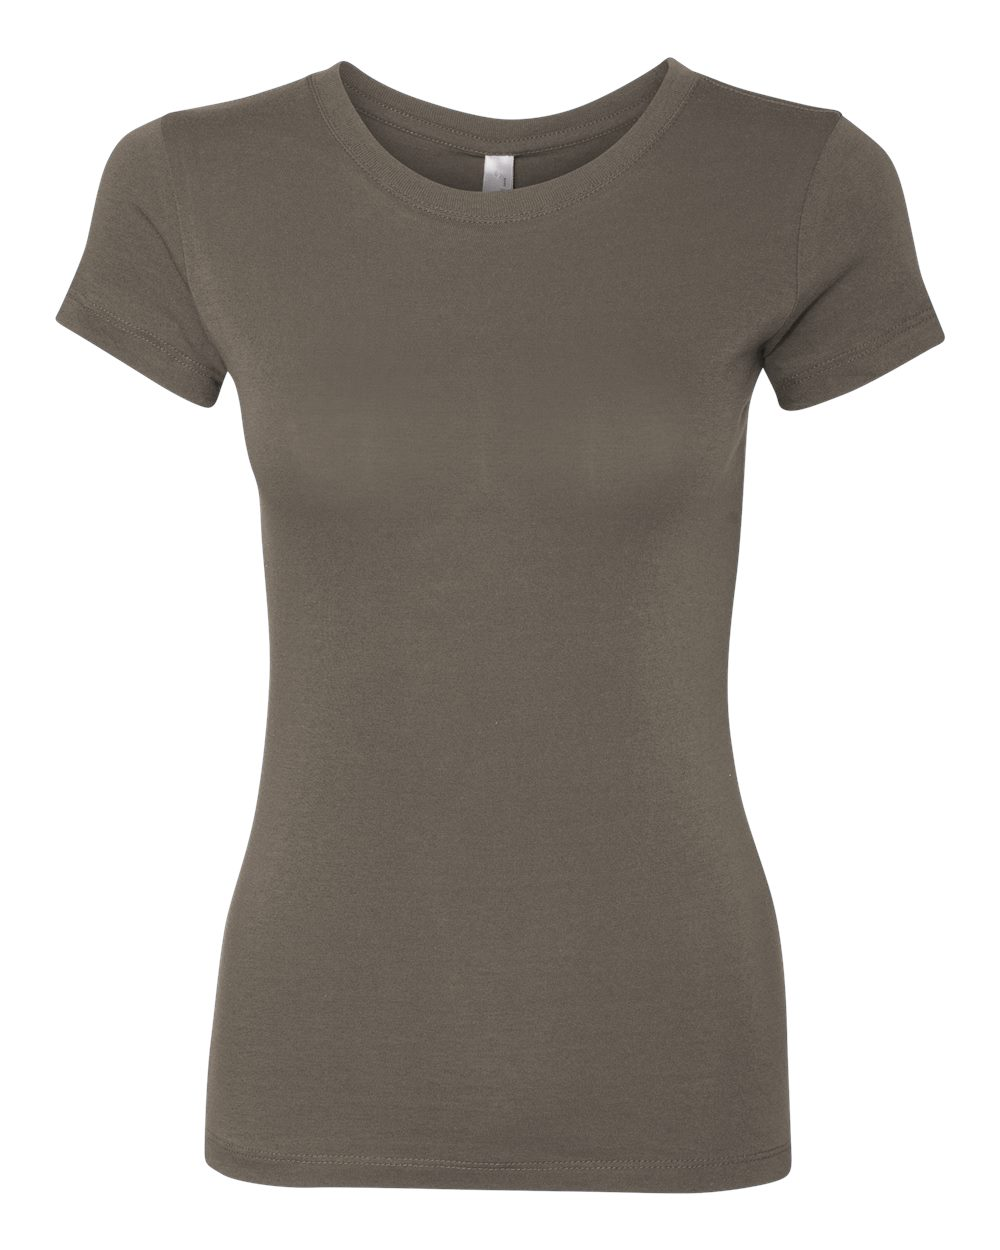 Next_Level_3300L_Warm_Grey_Front_High.jpg